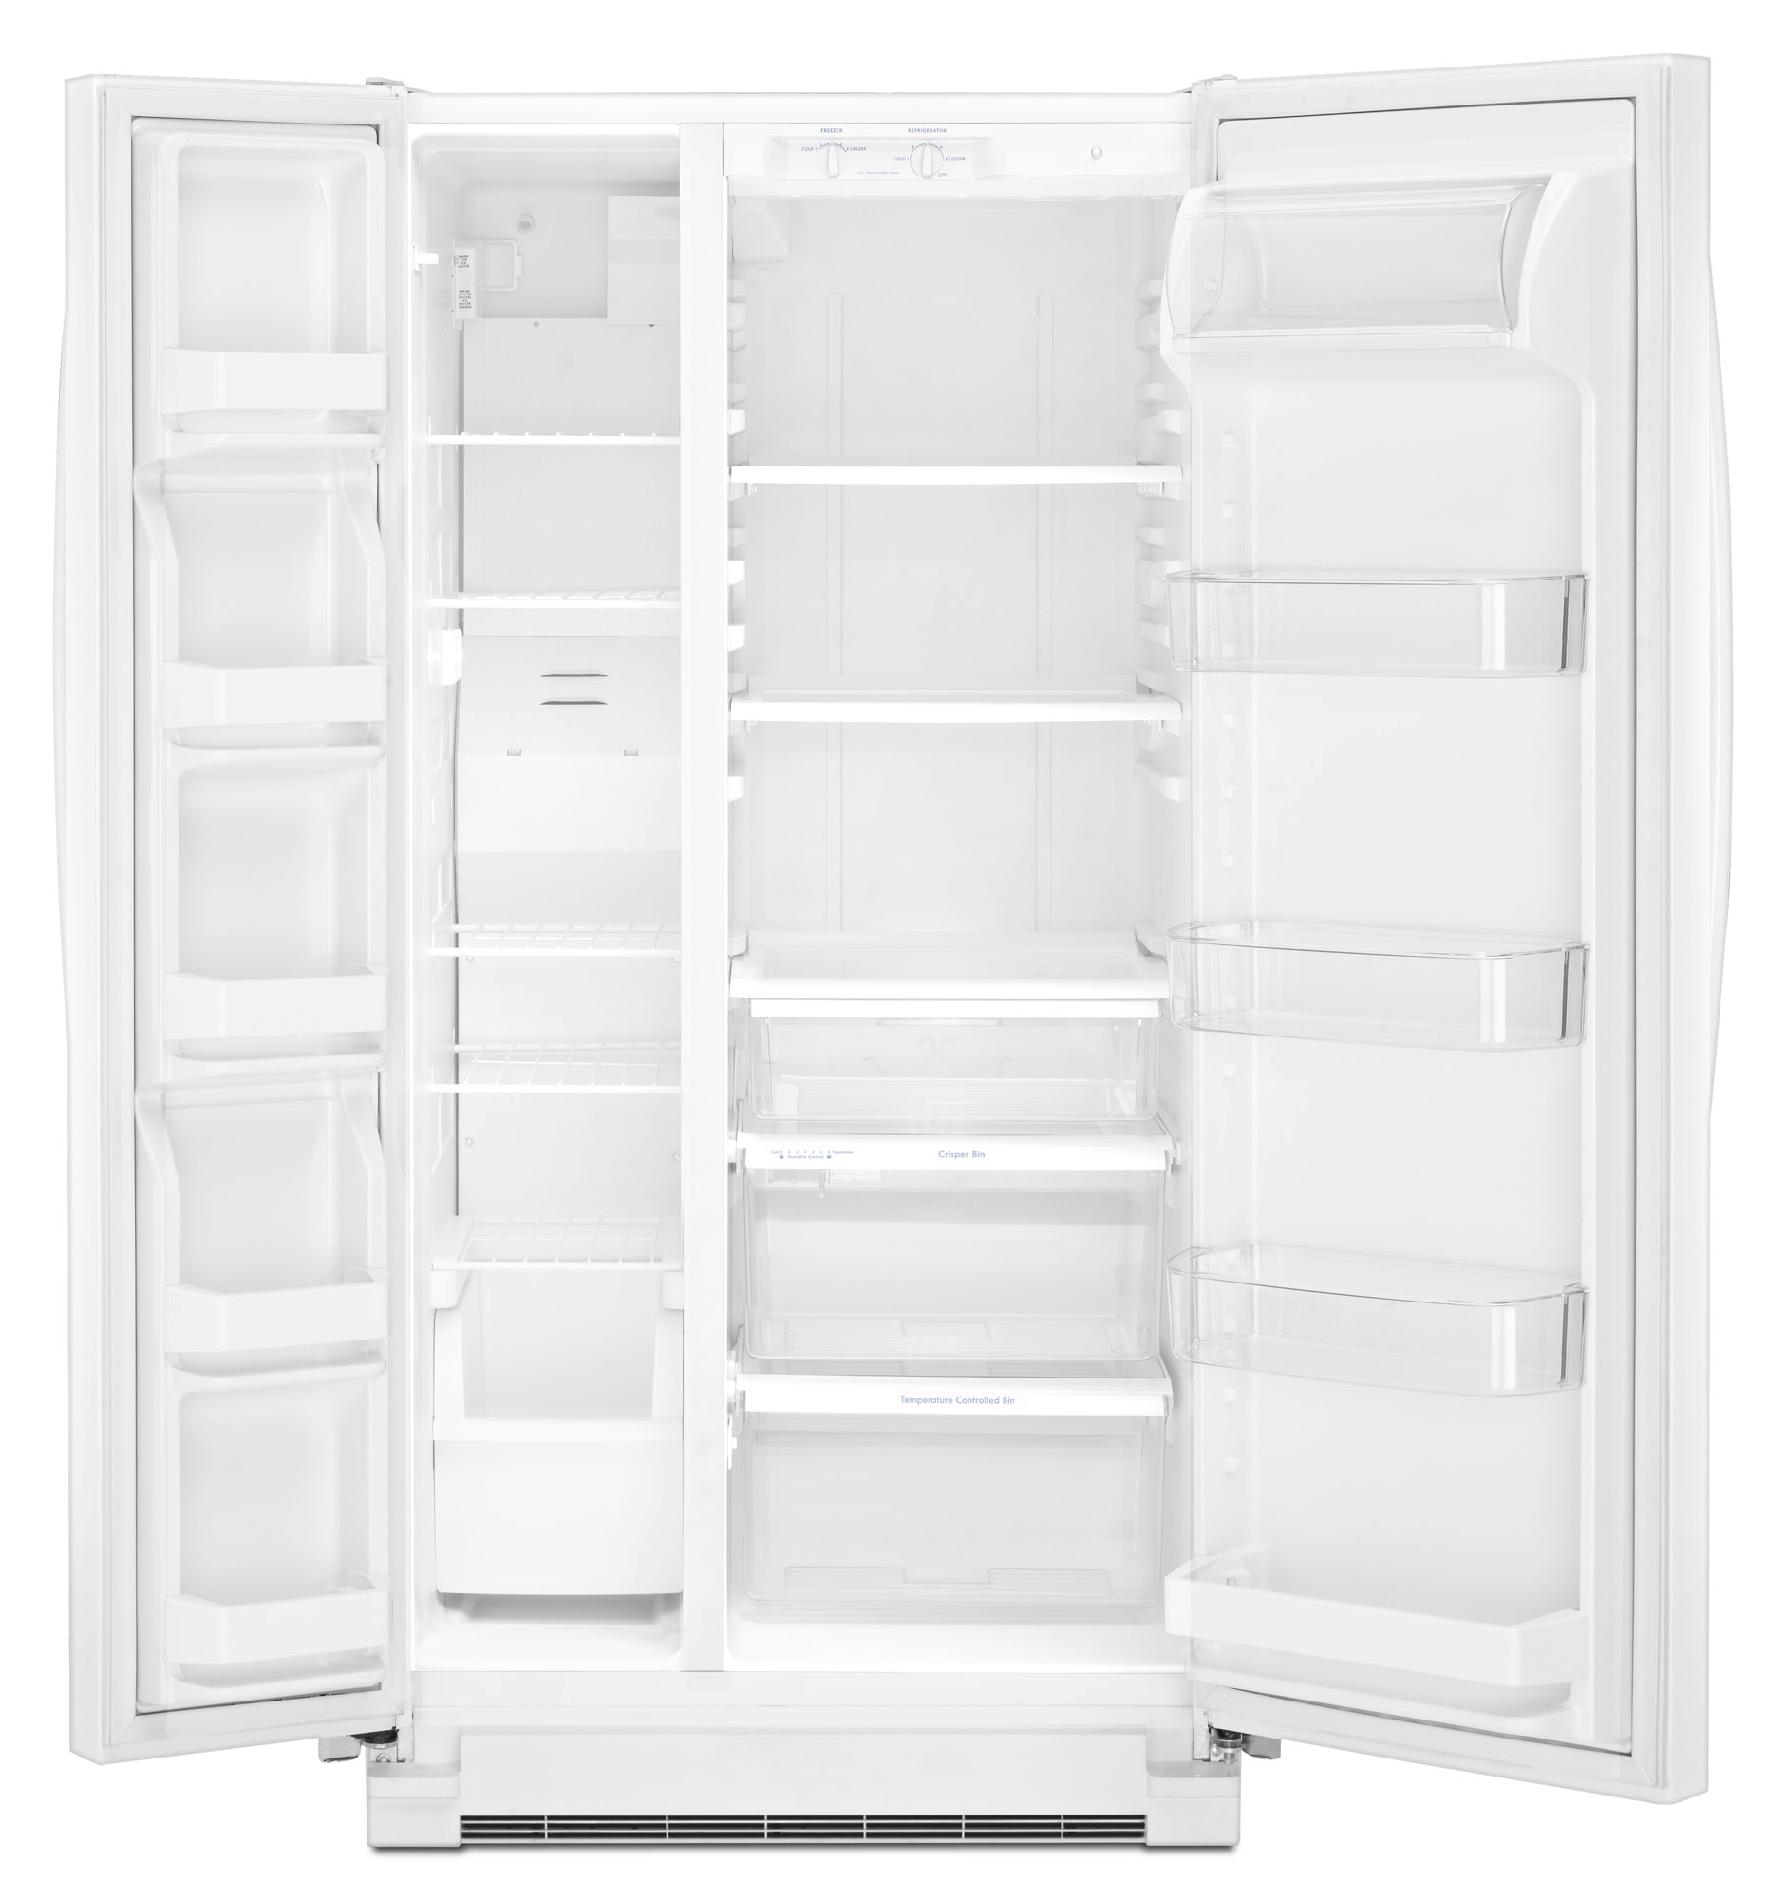 Kenmore 21.7 cu. ft. Side-by-Side Refrigerator - White